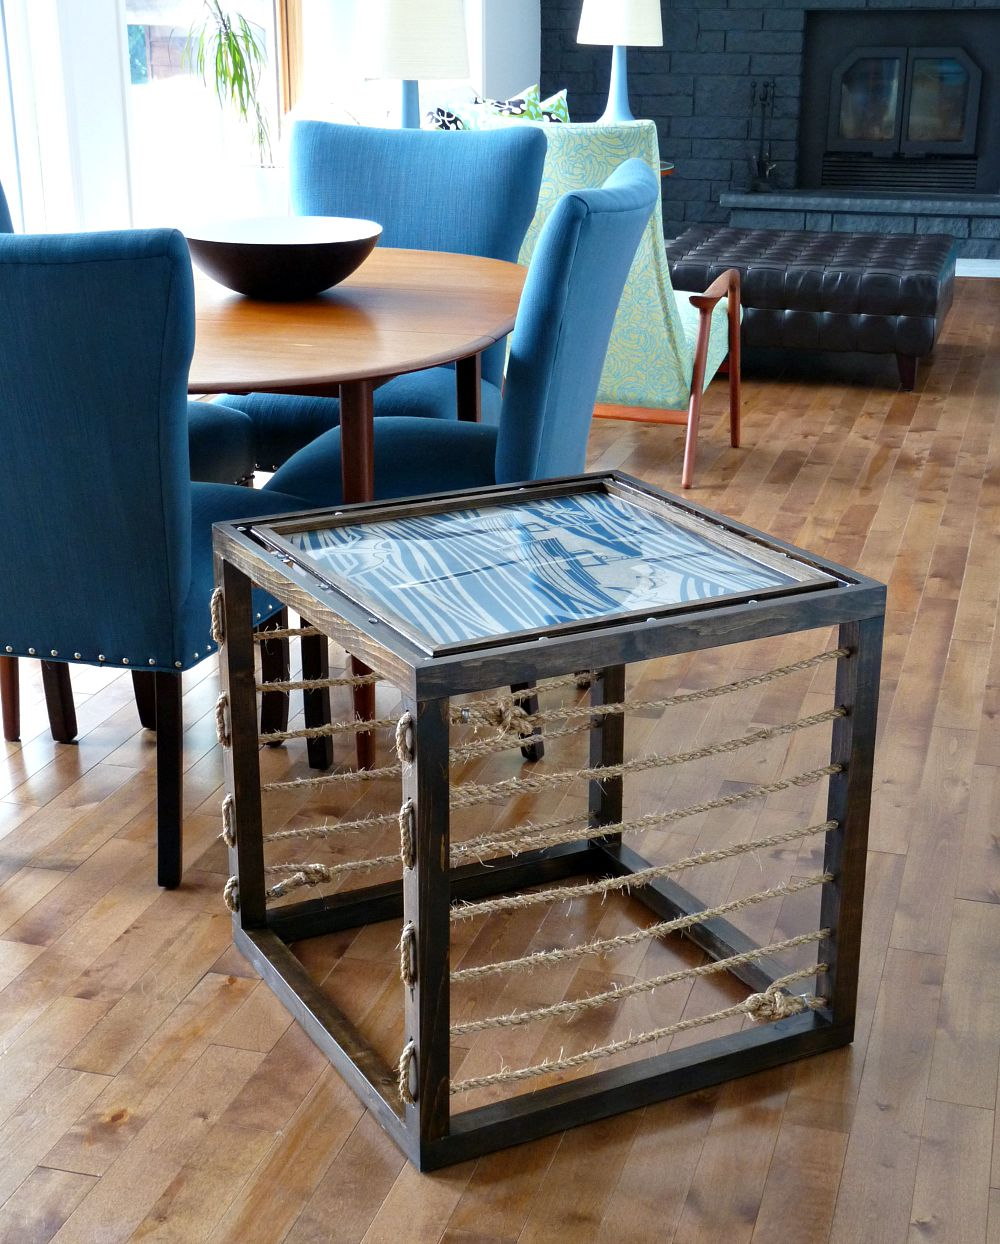 diy nautical accent table dans lakehouse rustoleum after loveyourwood contest runner rugs white round pedestal side glass drum smoked coffee low outdoor trestle kitchen dining